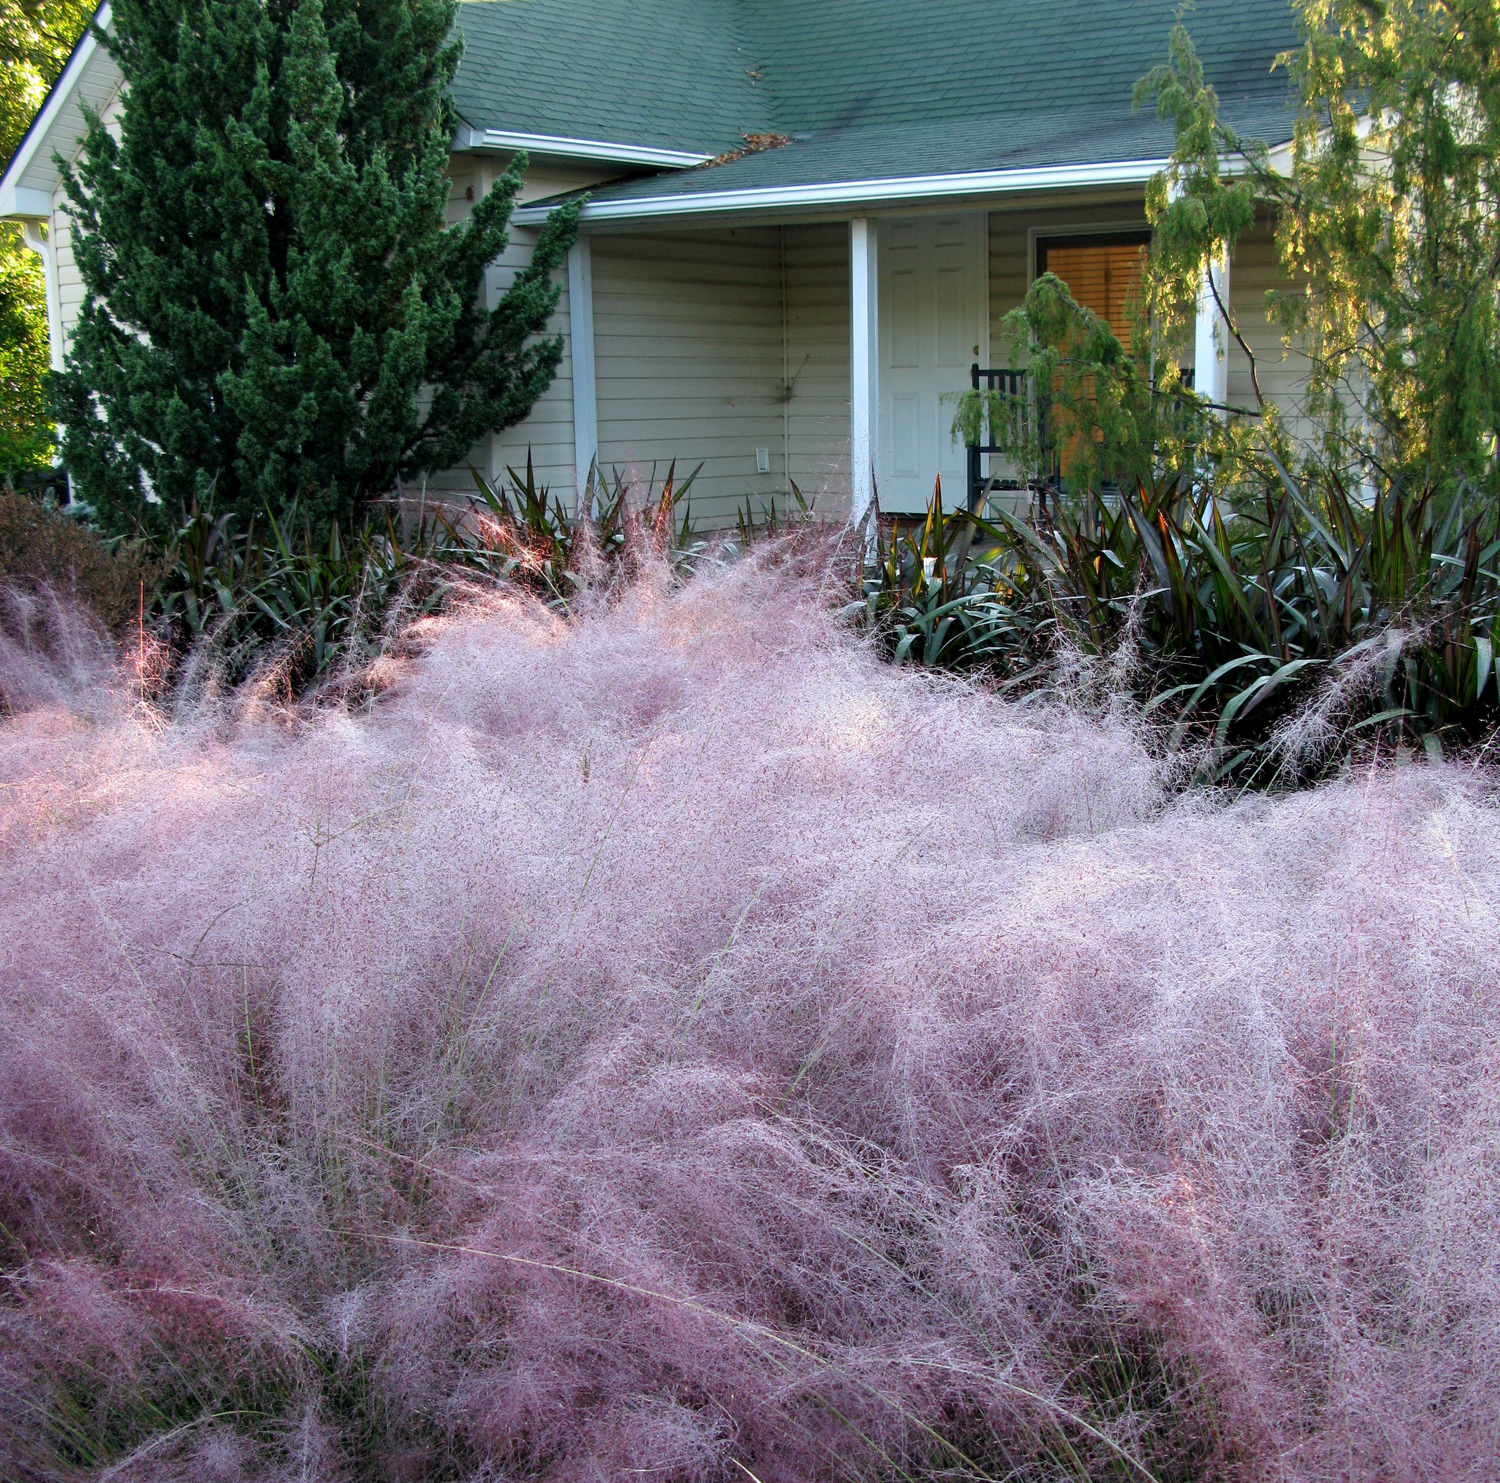 Pink Muhly Grass (<i>Muhlenbergia capillaris</i>) and a few other warm-season grasses do best if allowed to establish before cold and wet conditions prevail in Fall.